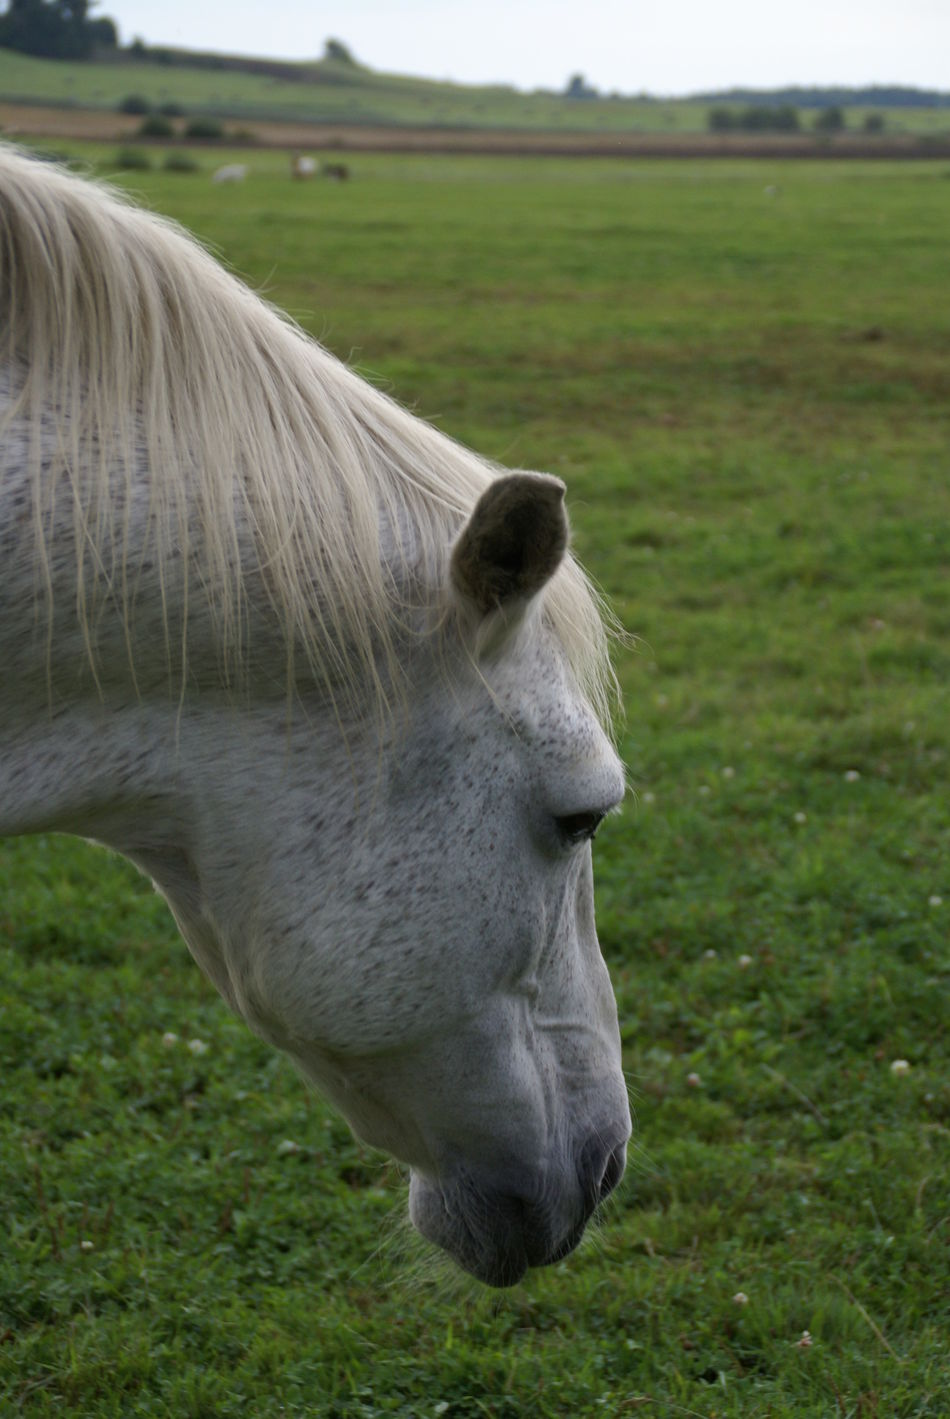 Field Grass Animal Themes Mammal Nature Outdoors No People One Animal Day Domestic Animals Country Living Country Life Countryside Farm Event Motion Horses Sky Horse White Horse Farm Life Farming Close-up Landscape Grass